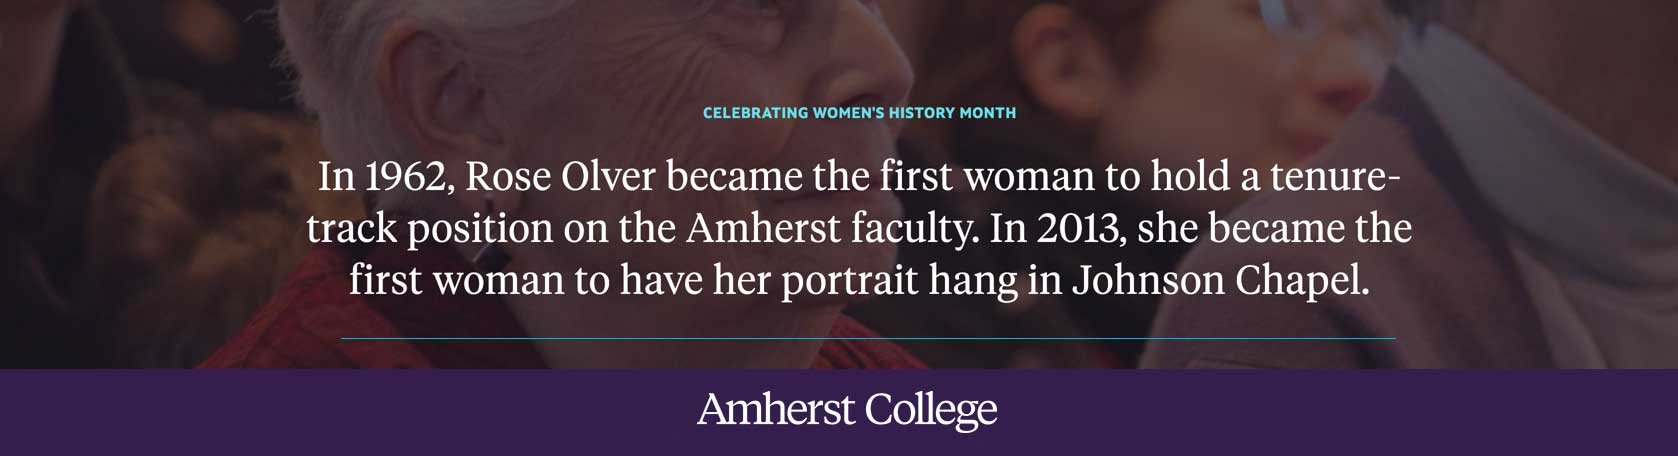 In 1962, Rose Olver became the first woman to hold a tenure track position at Amherst College